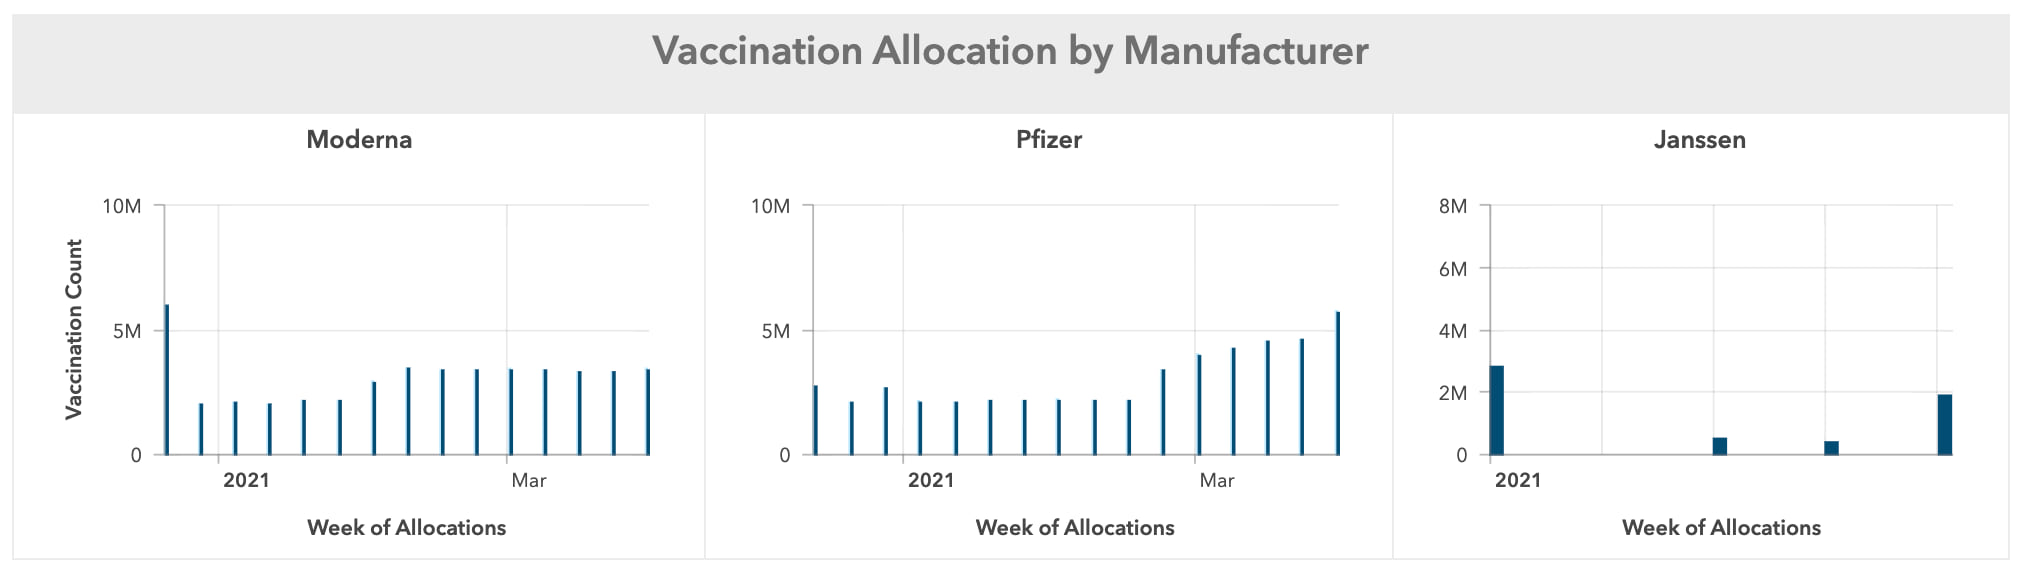 Serial charts showing vaccination allocation by different manufacturers